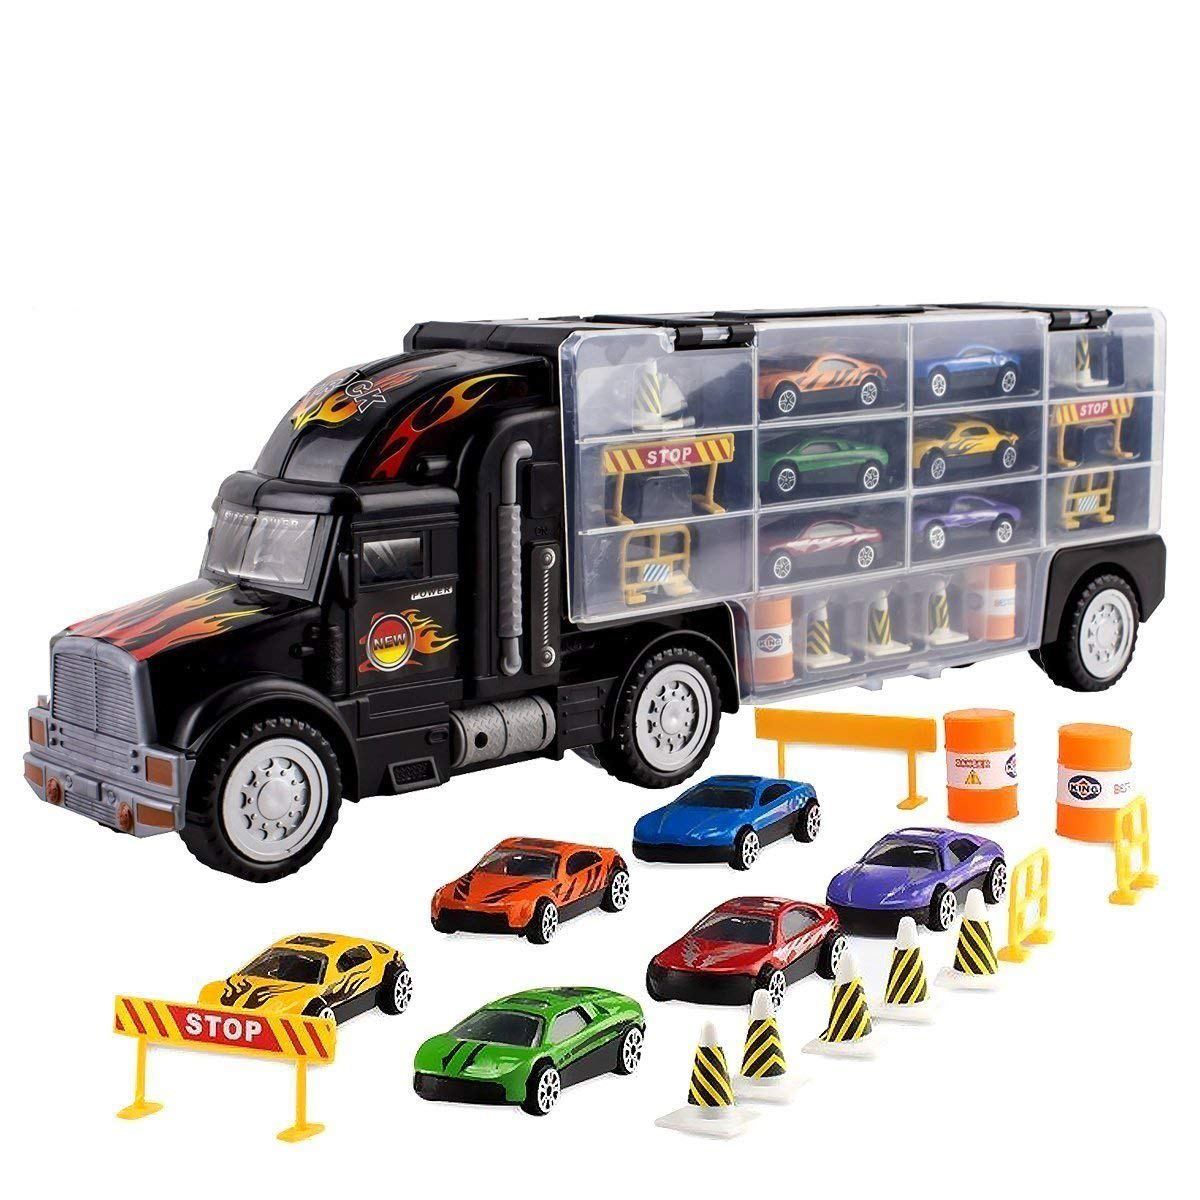 Toy Truck Transport Car Carrier Toy for Boys and Girls age 3 - 10 yrs old - Hauler Truck Includes 6 Toy Cars and Accessories - Car Truck Fits 28 Car Slots - Ideal Gift For Kids MEGATOYBRAND